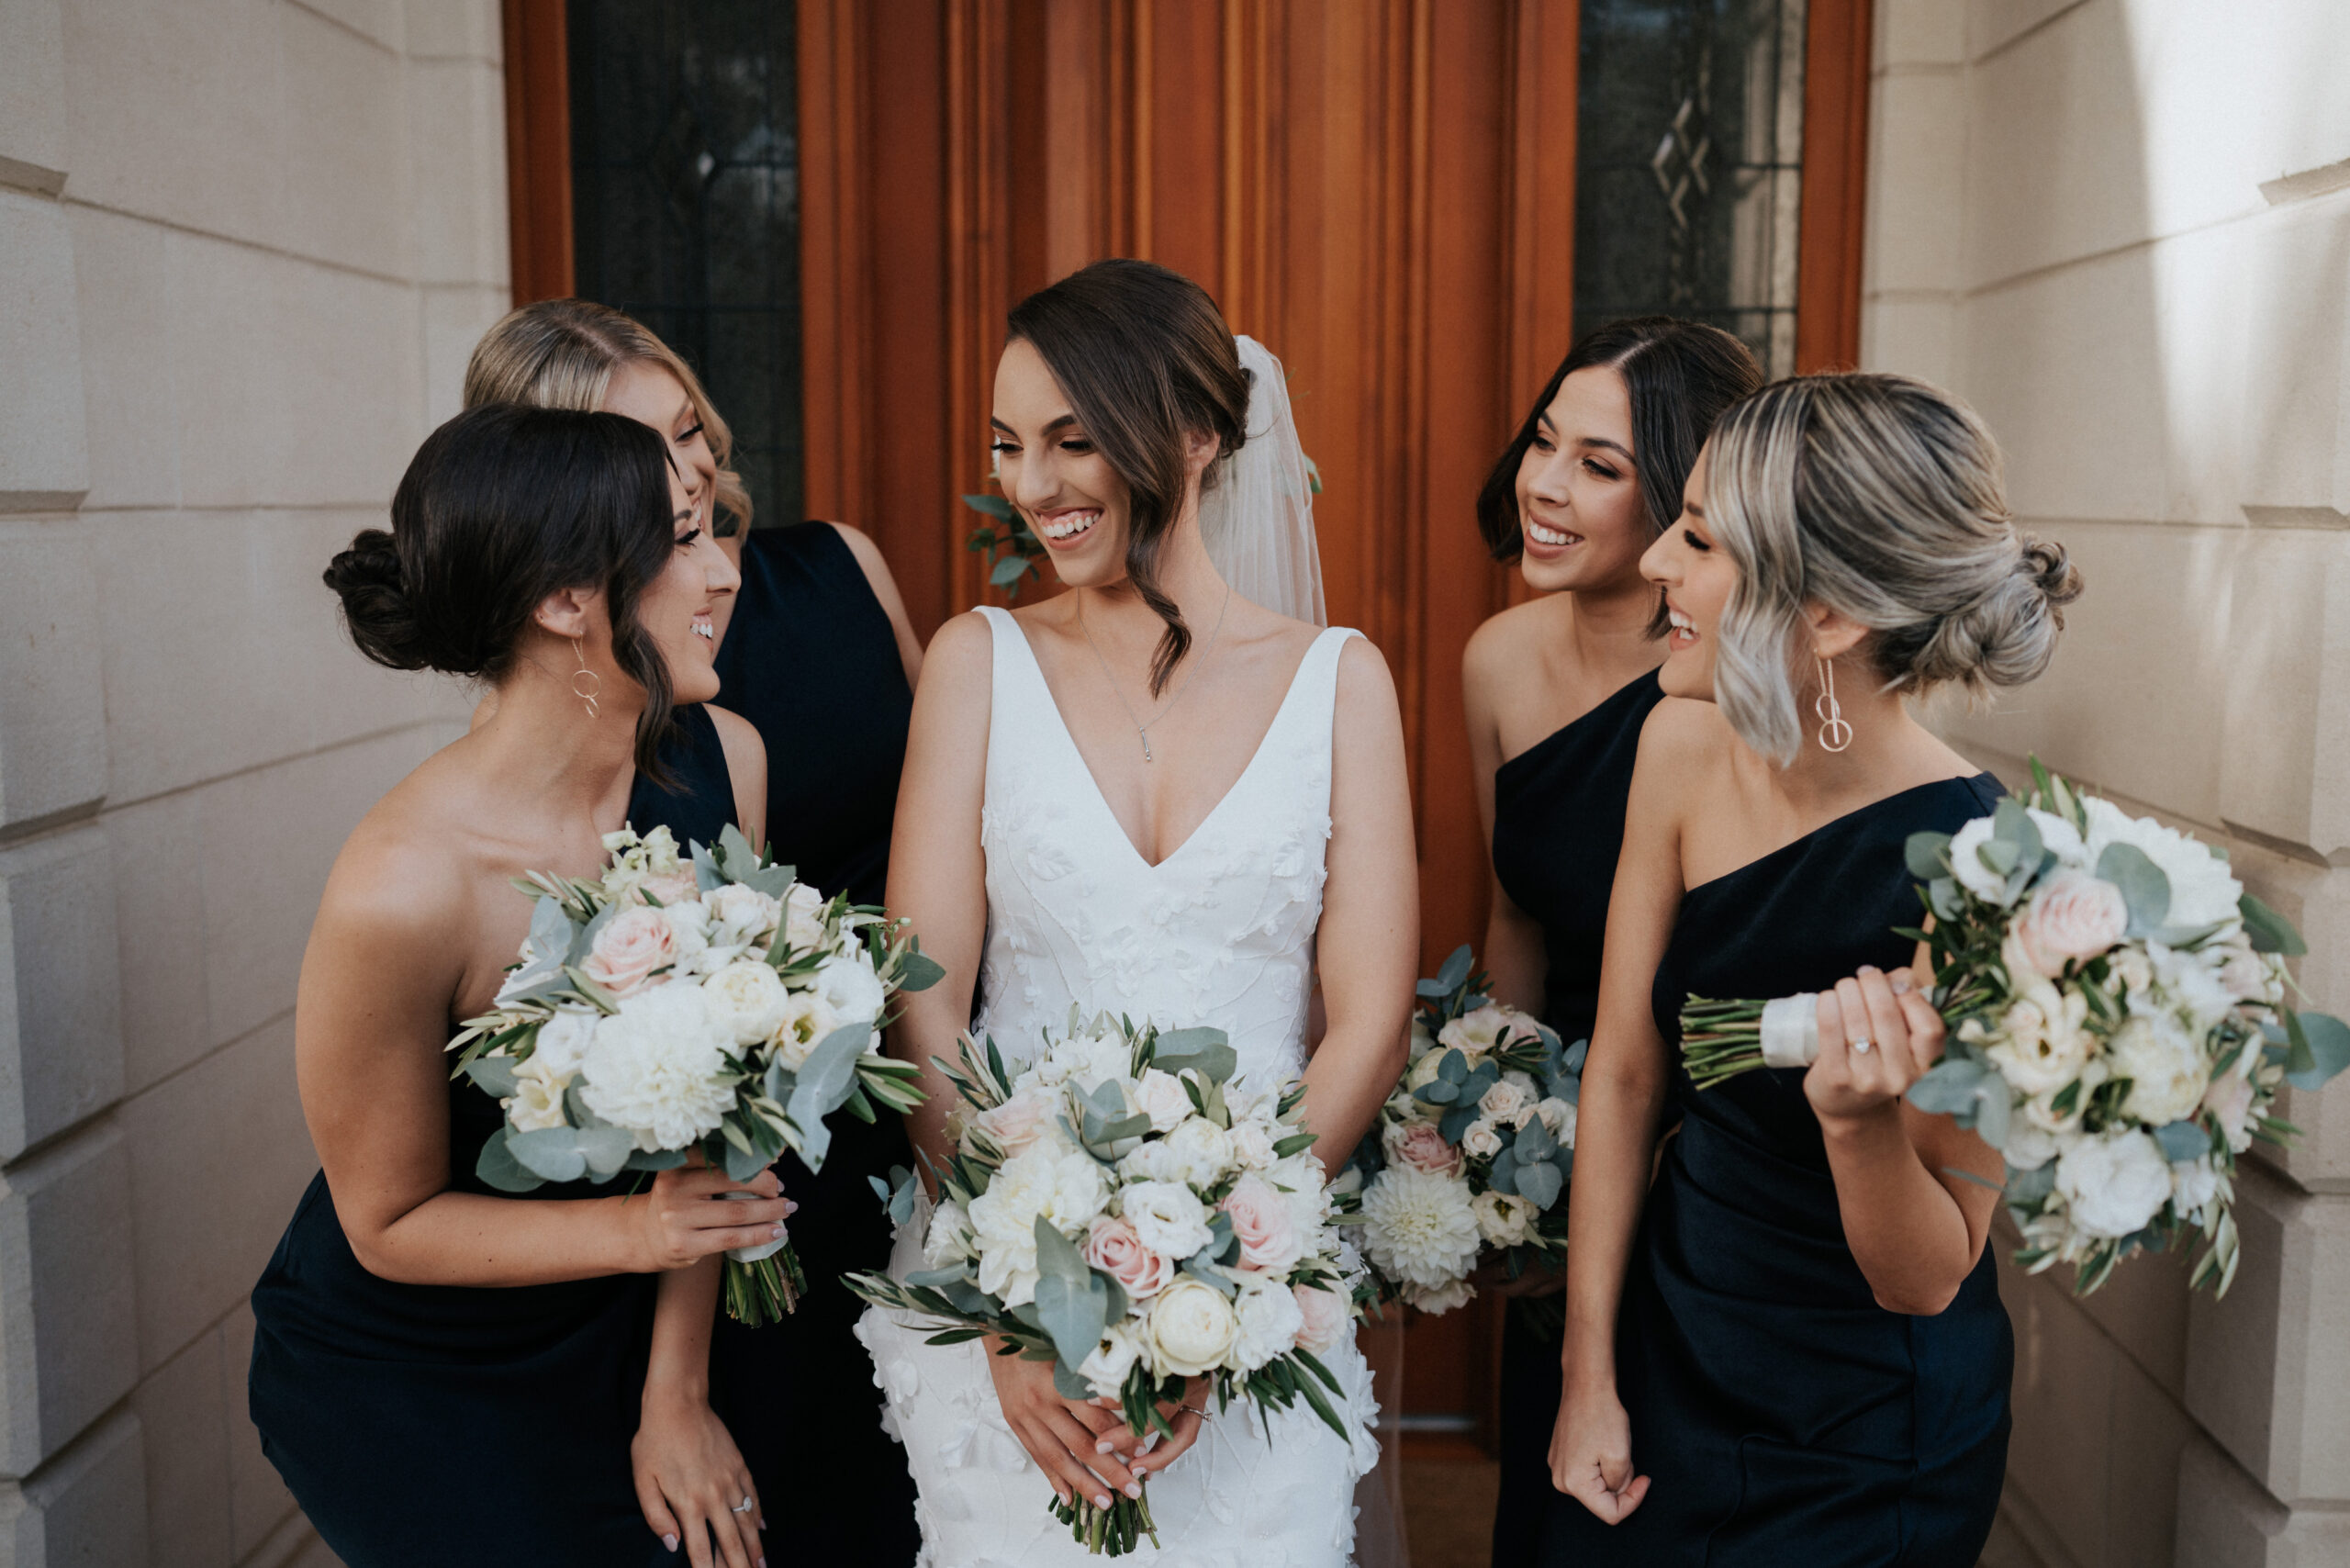 Emily and bridesmaids